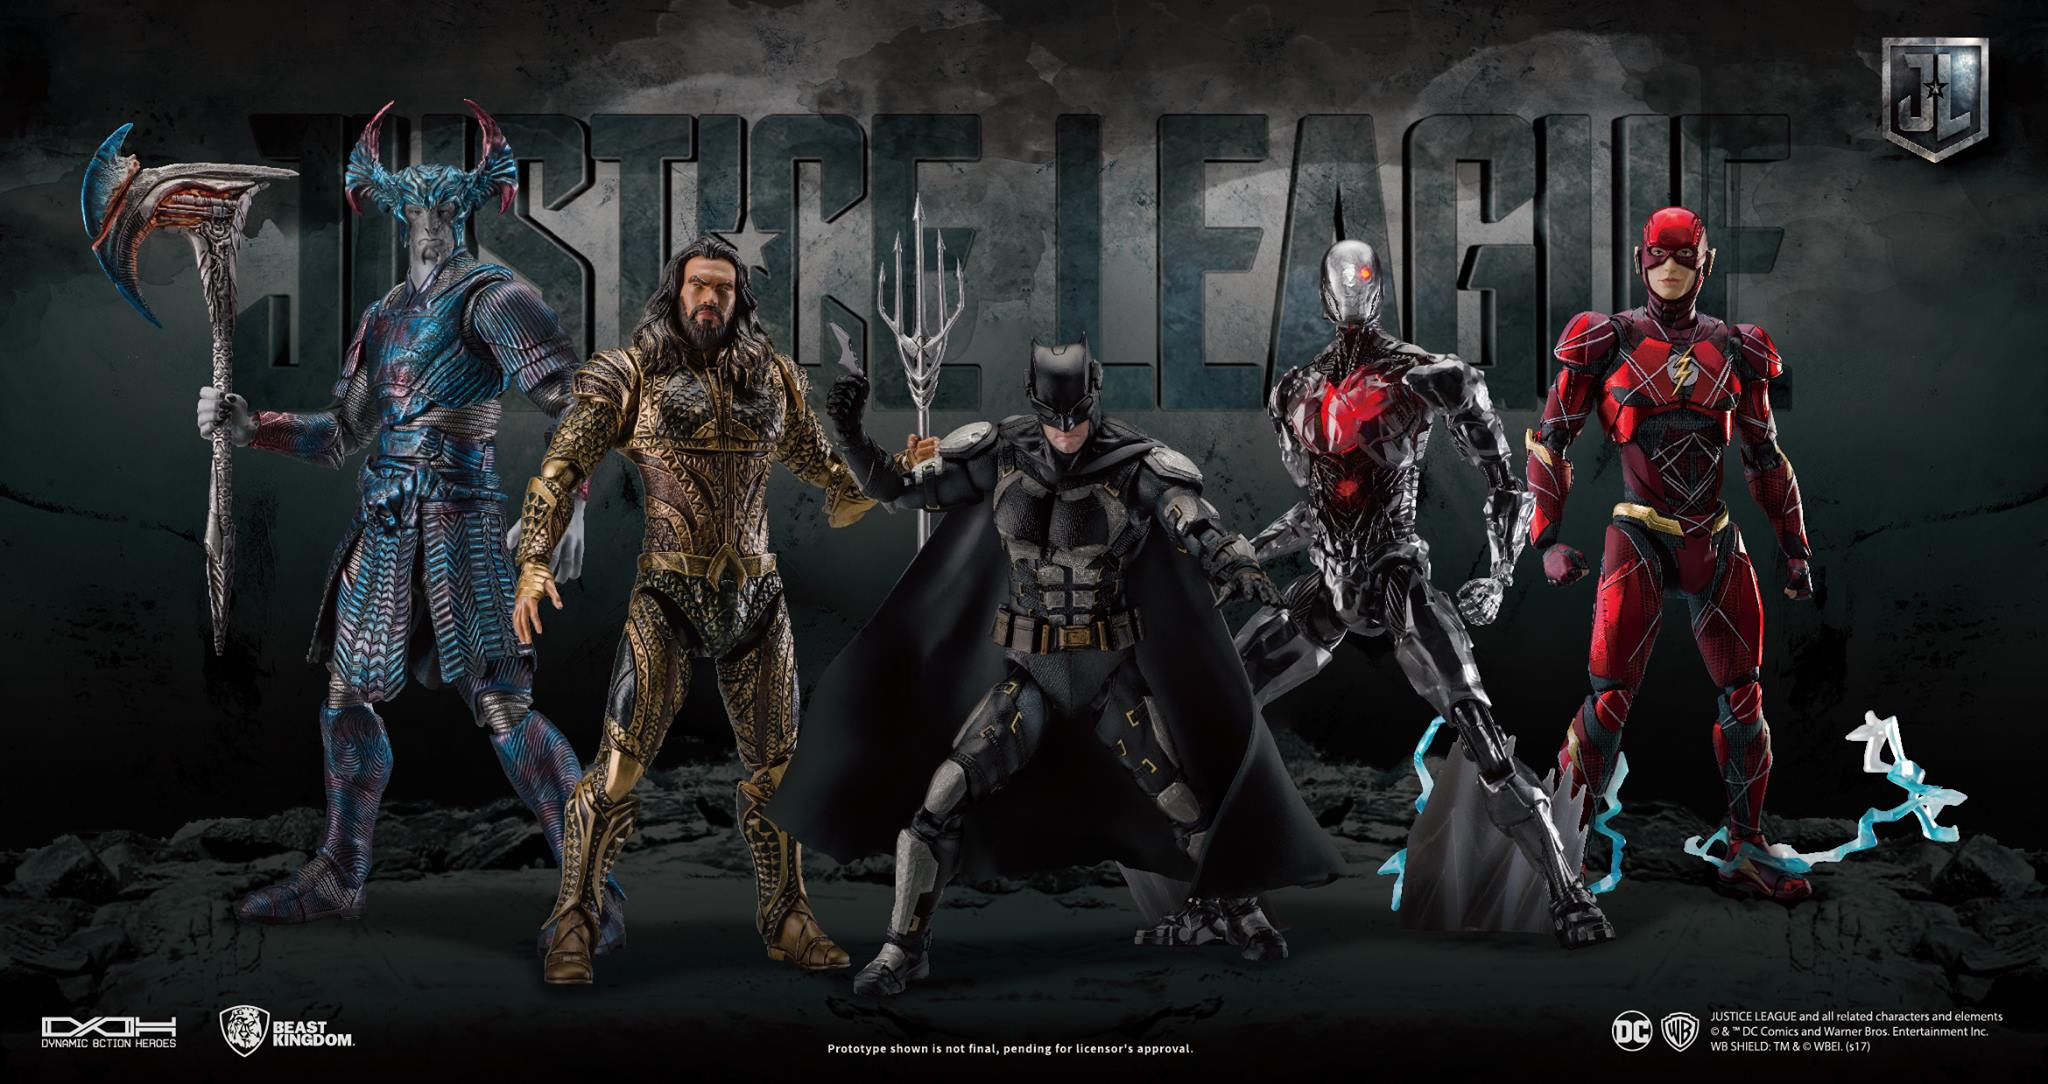 beast kingdom dynamic 8ction heroes justice league figures